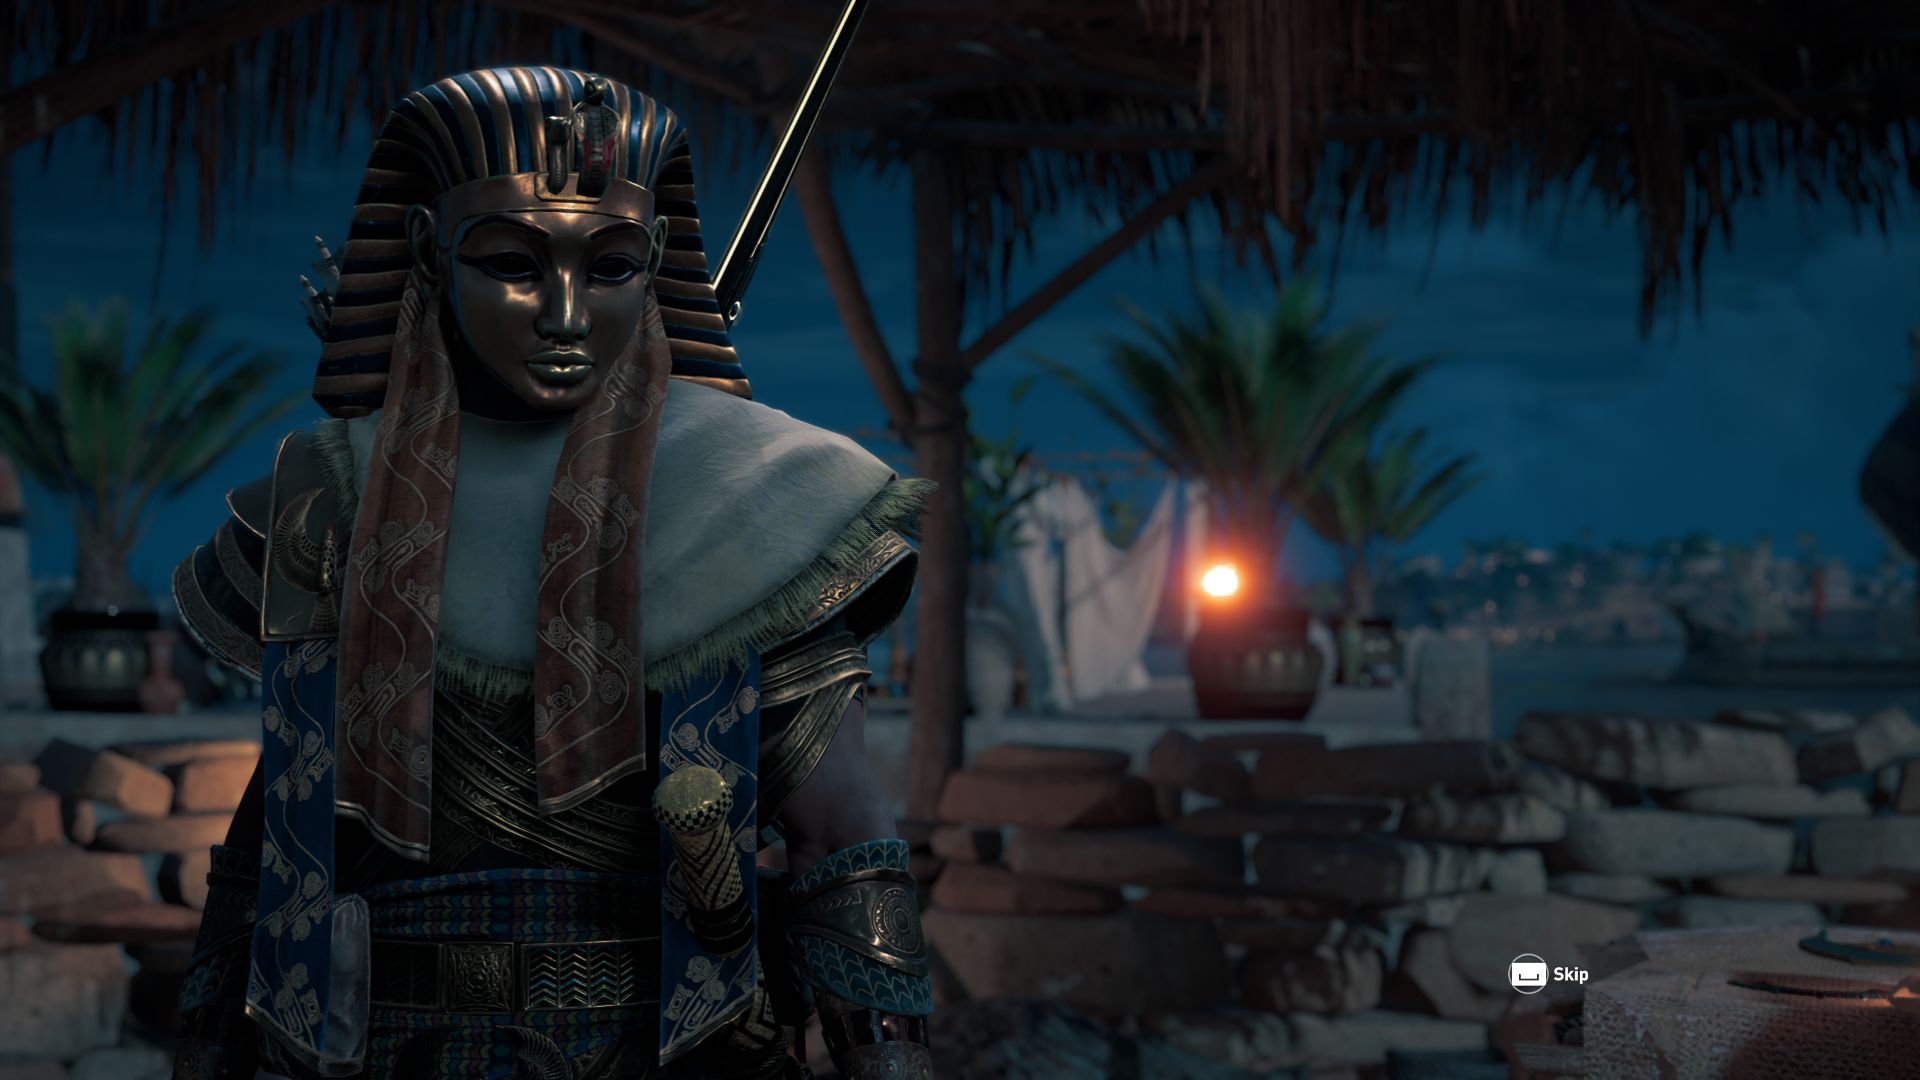 assassins-creed-origins-screenshot-2019-01-15-19-47-02-75